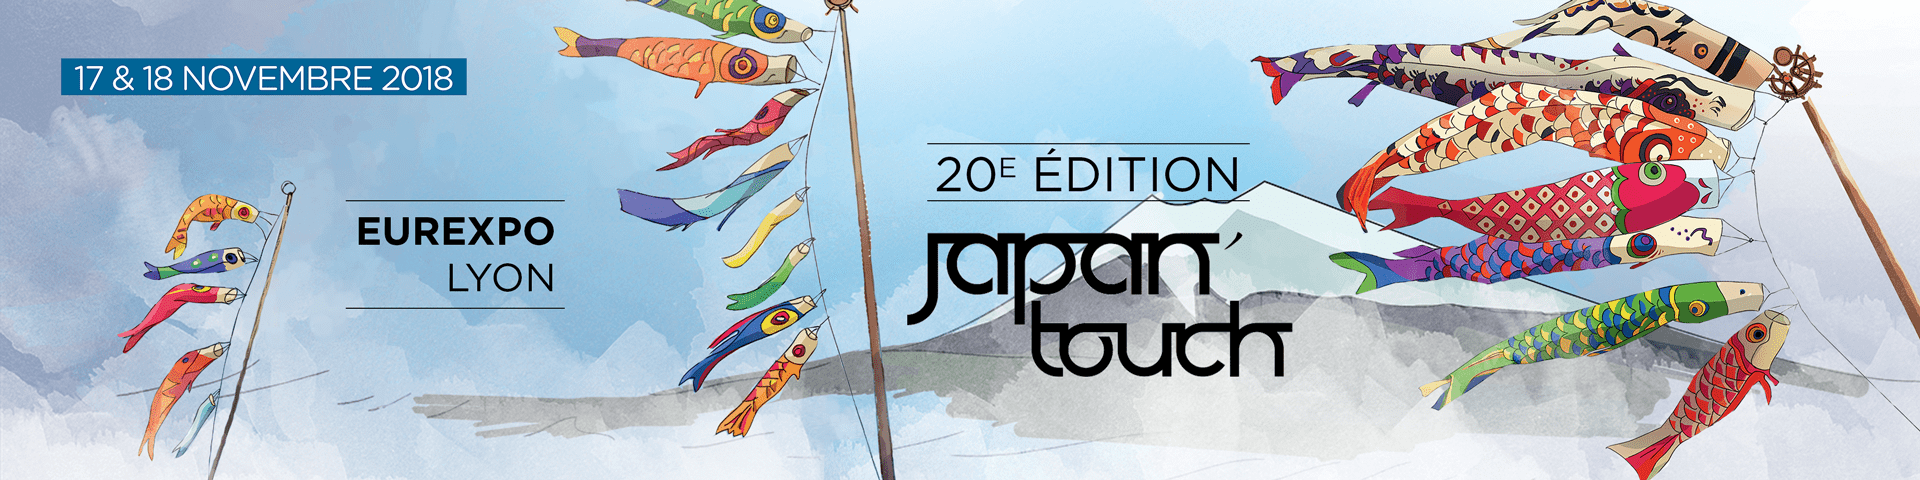 Japan touch 2018 HEADER_2018